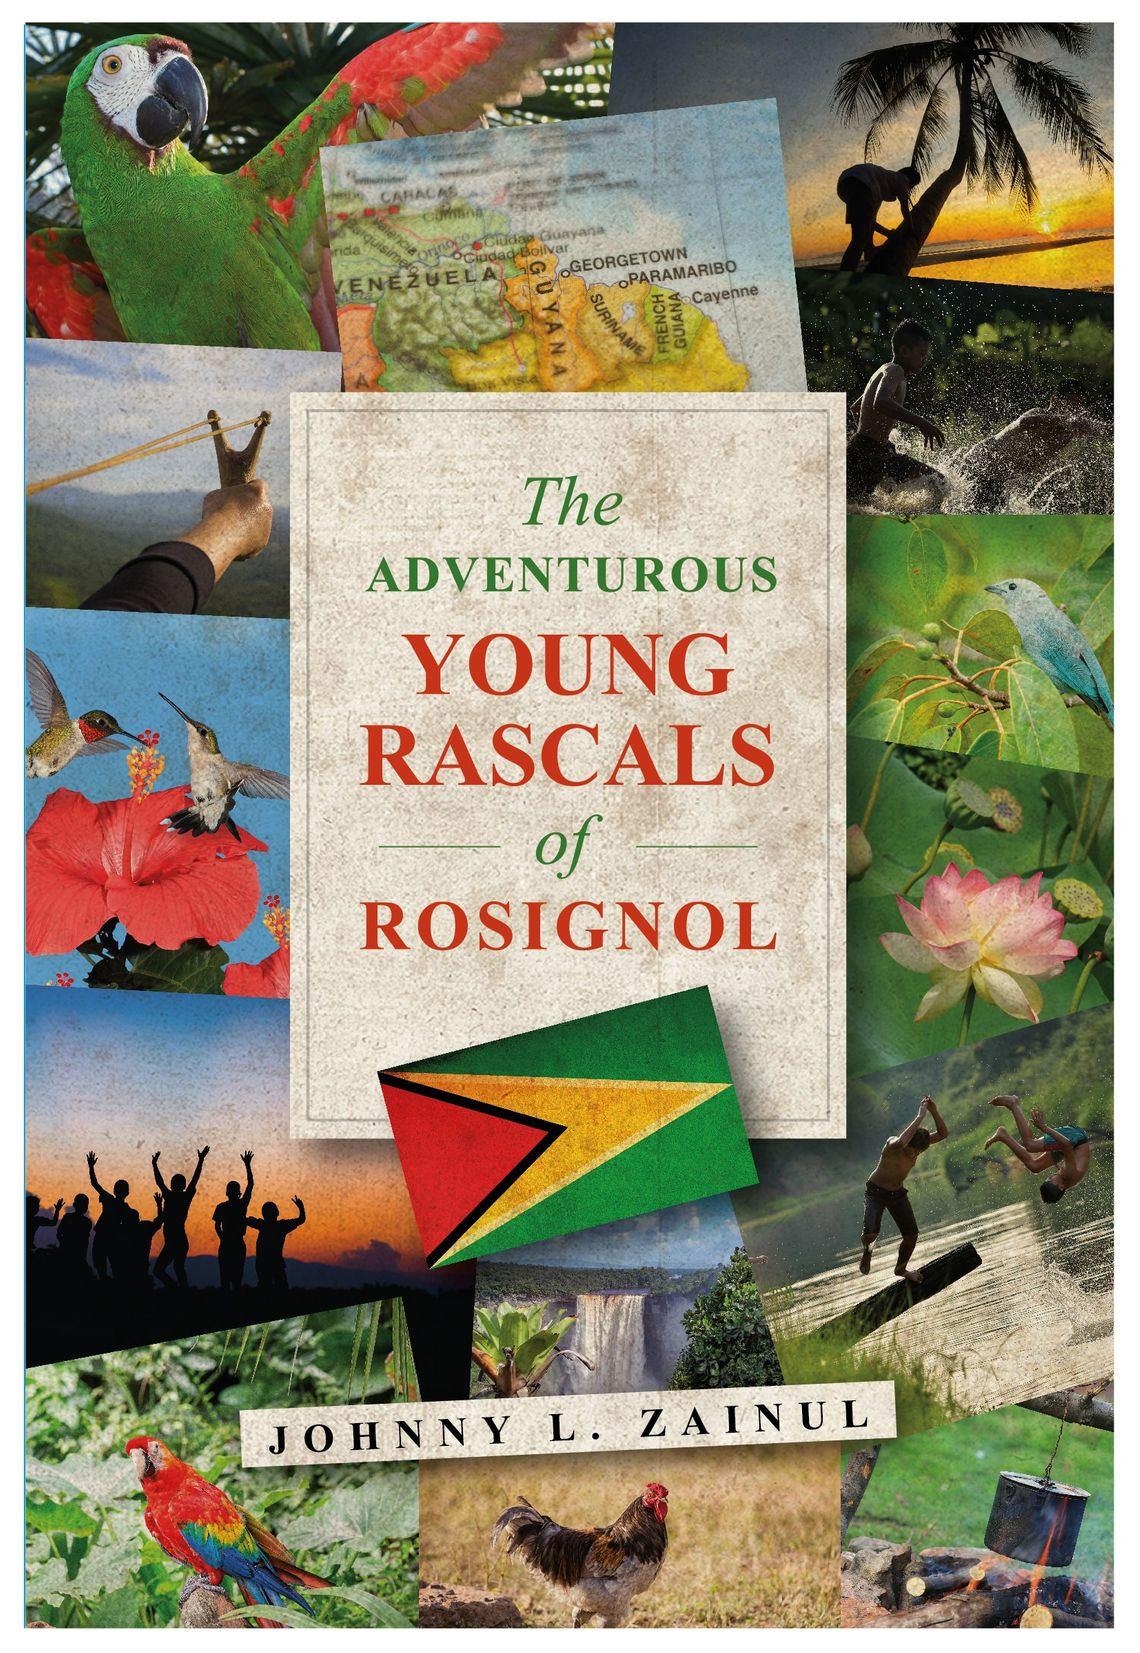 The Adventurous Young Rascals of Rosignol